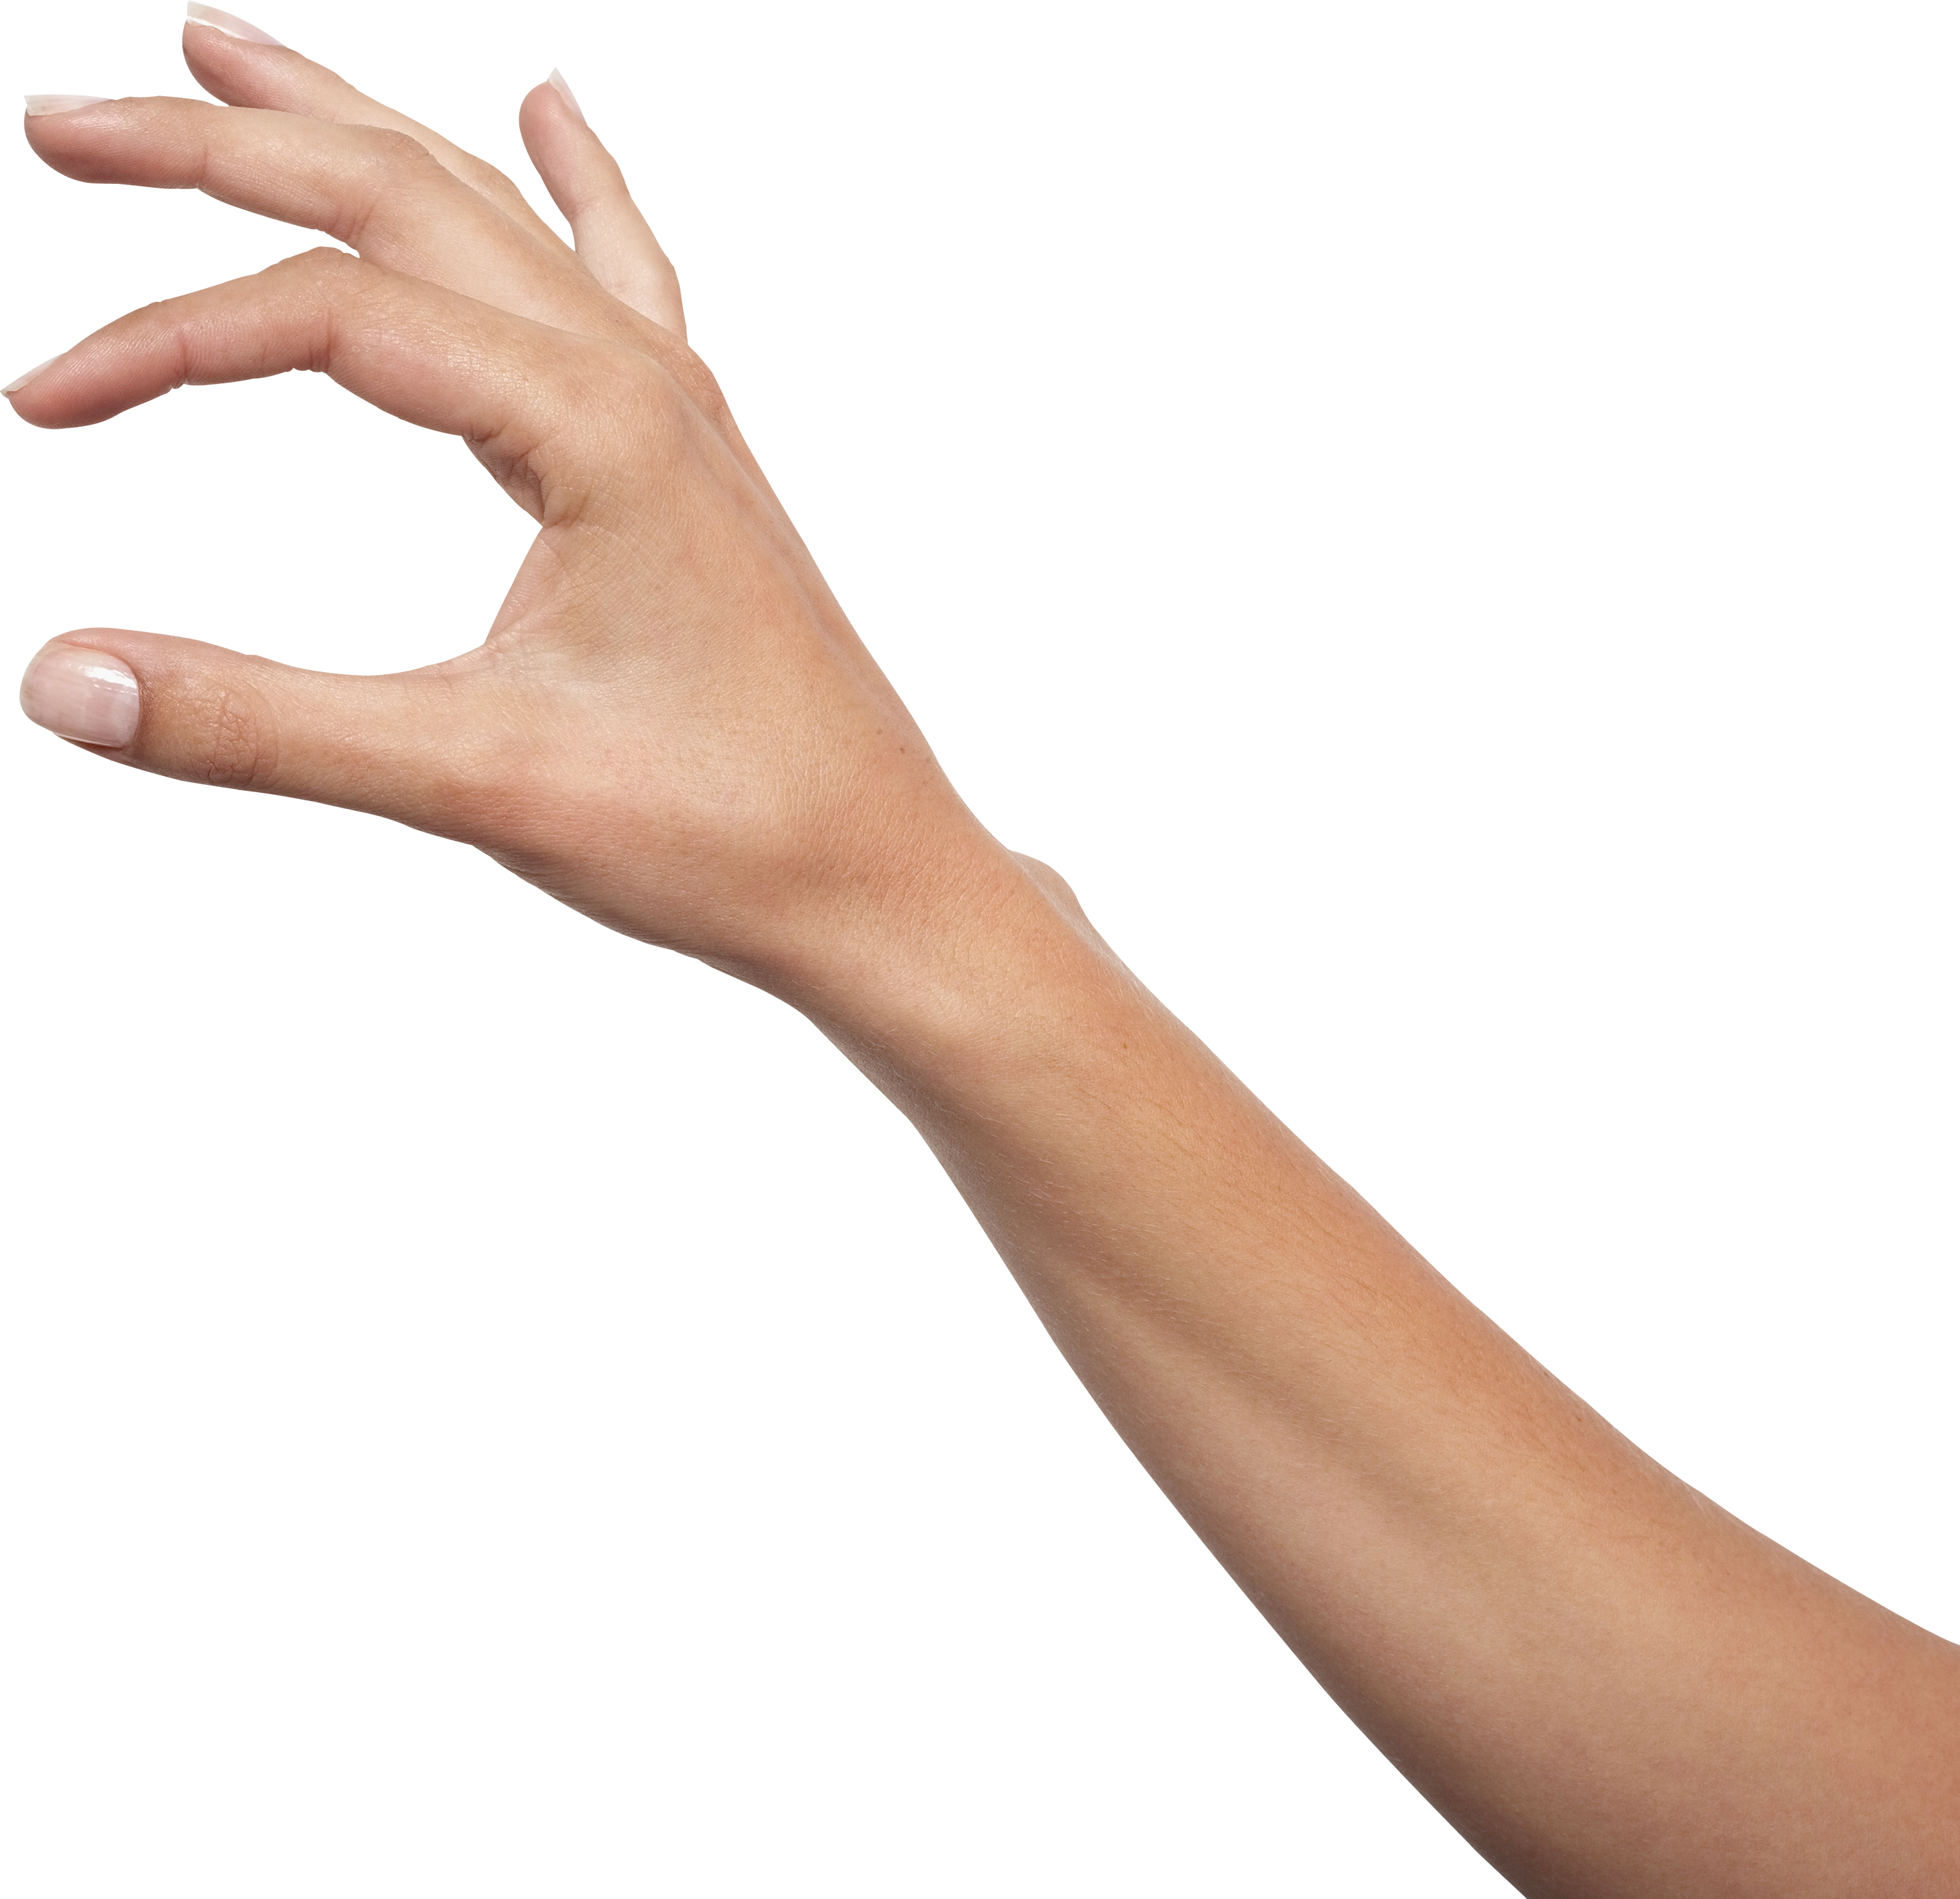 Hands Png Icon Web Icons Png Grabbing hand images, stock photos & vectors | shutterstock. hands png icon web icons png